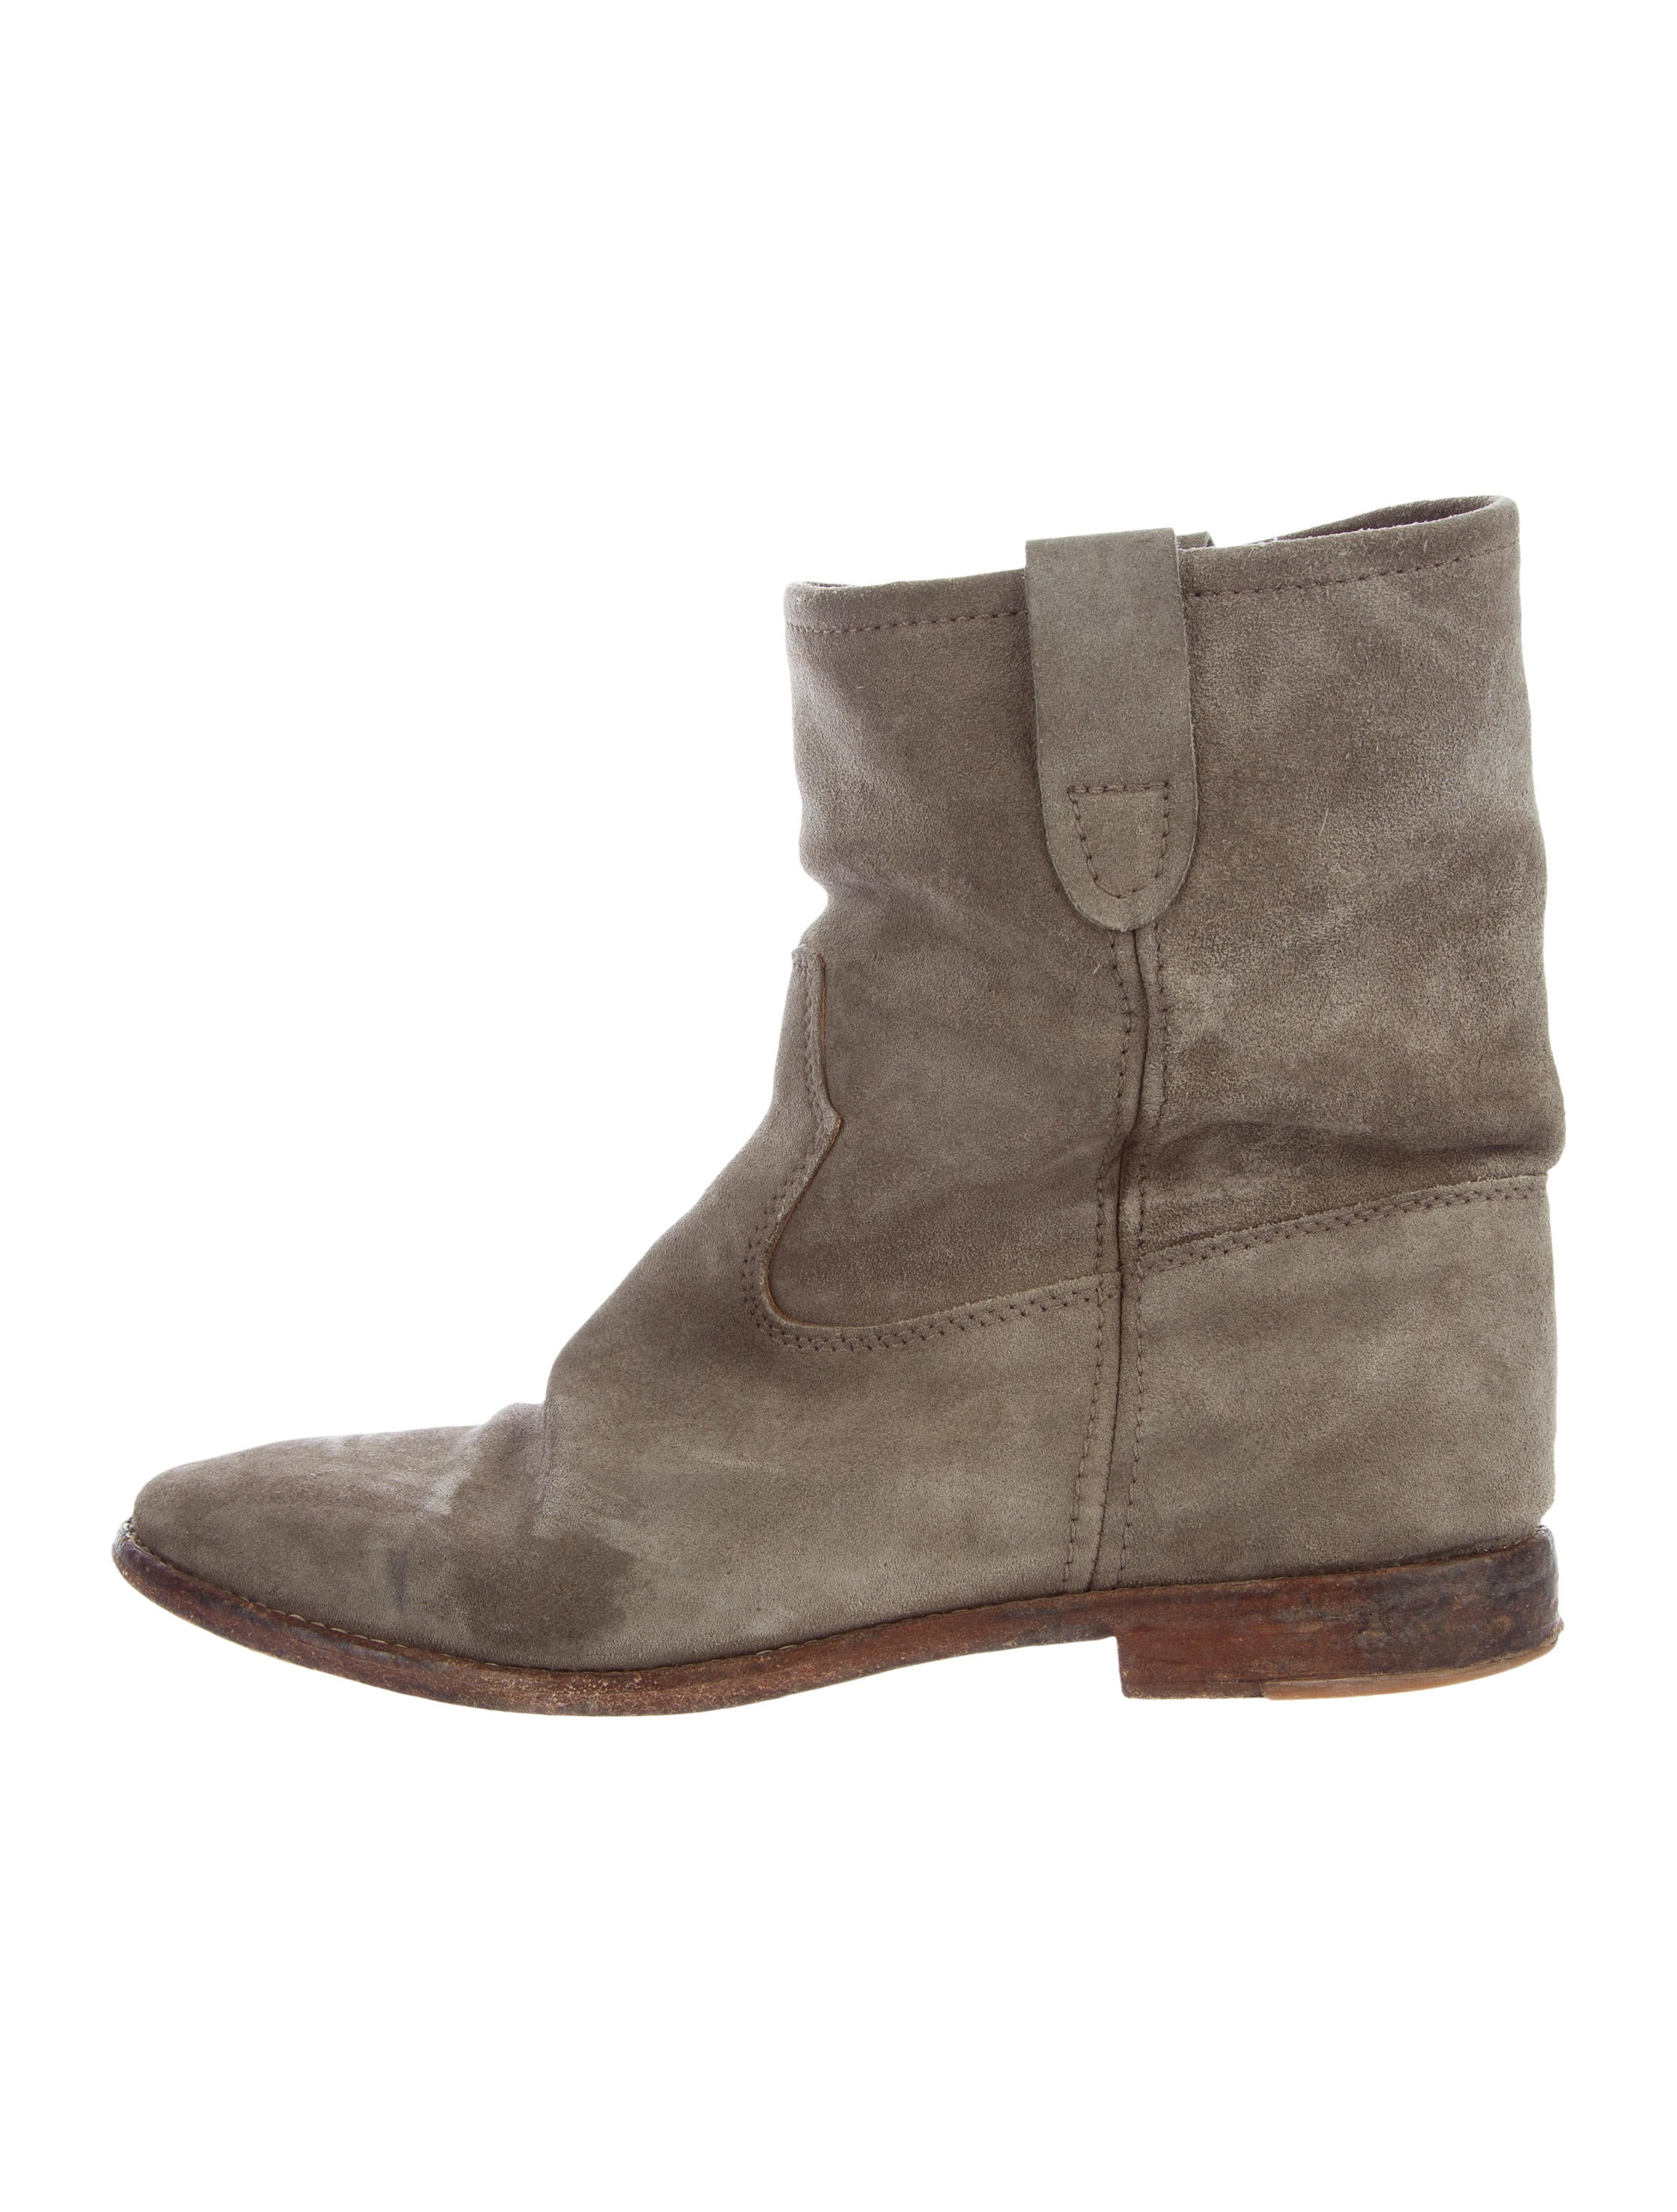 isabel marant suede round toe ankle boots shoes isa45939 the realreal. Black Bedroom Furniture Sets. Home Design Ideas